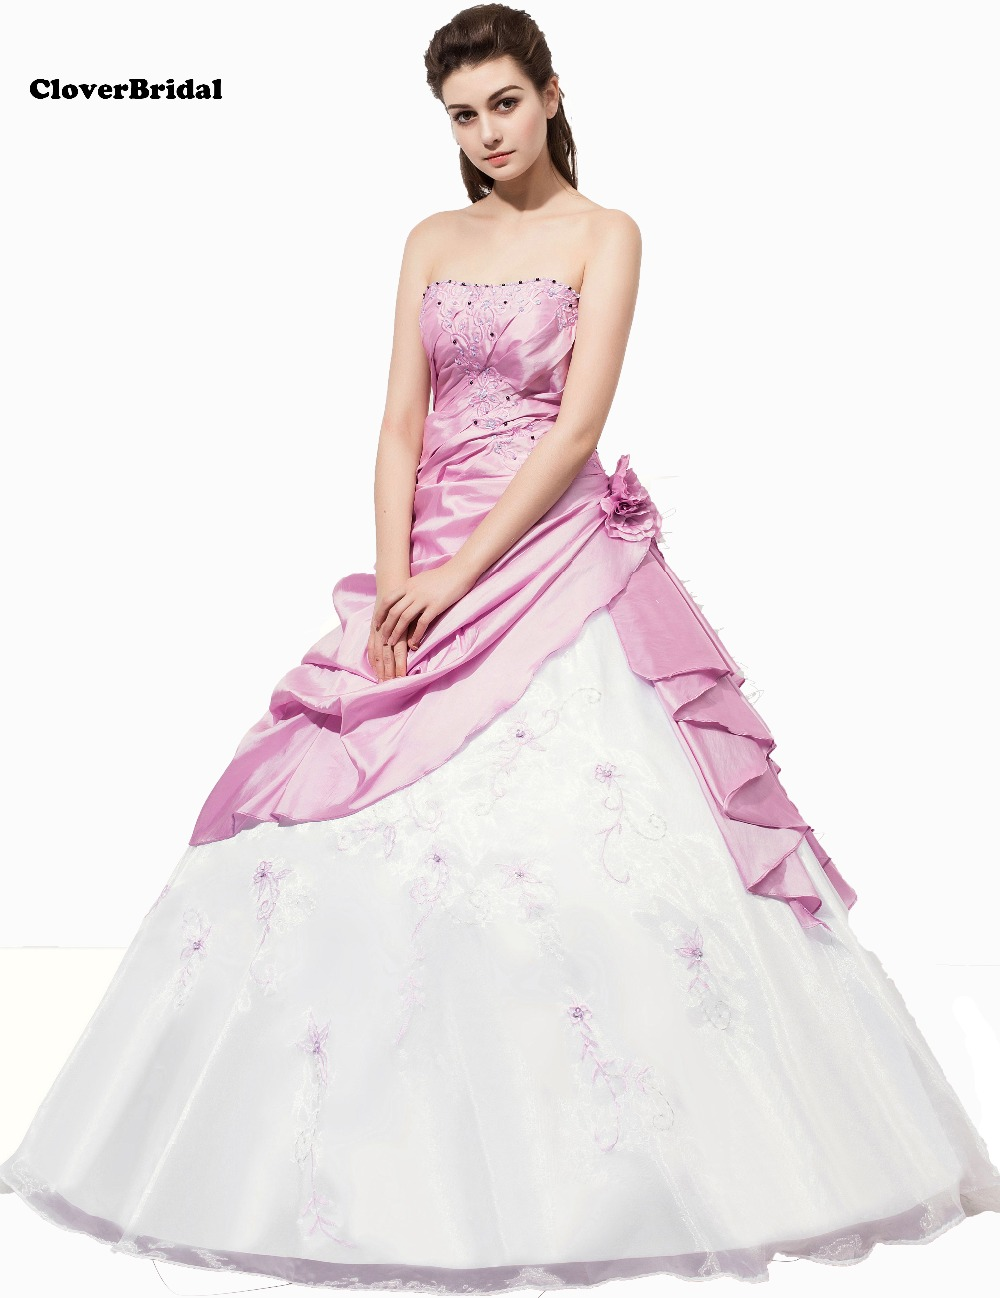 In Stock New Taffeta And Tulle Handmade Flowers And Embroidery Blushing Pink White Quinceanera Dresses Size